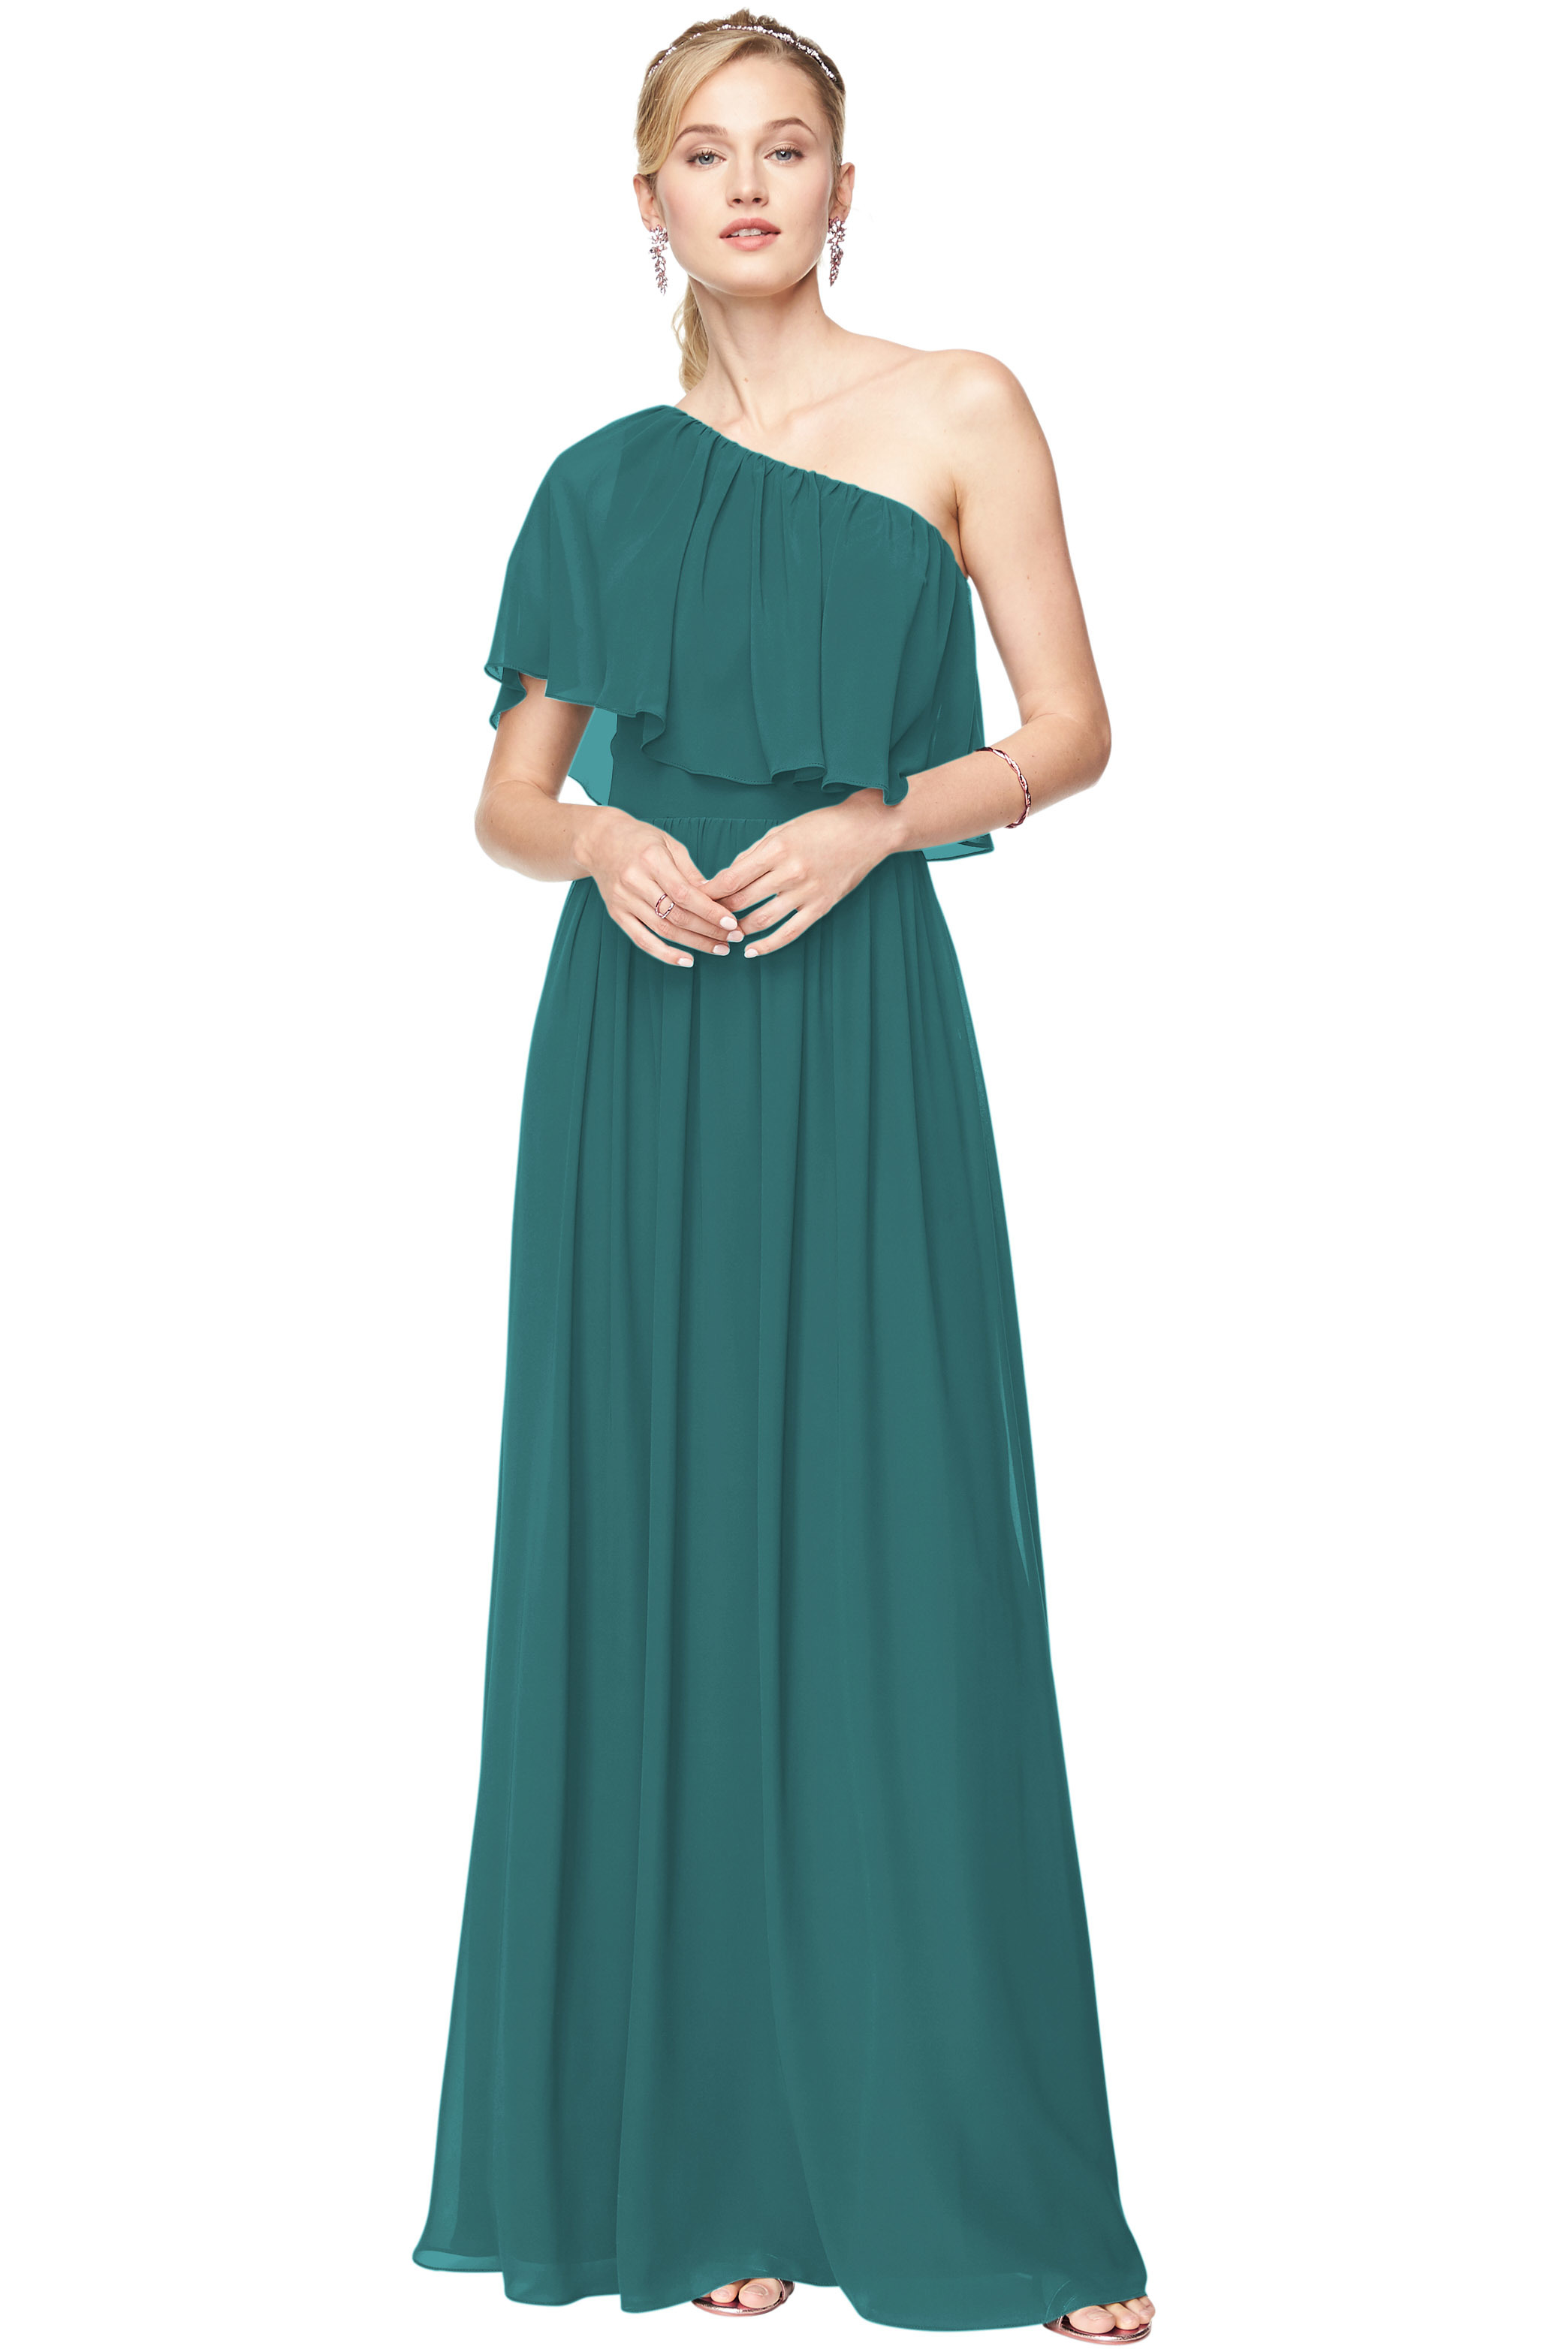 Bill Levkoff OASIS Chiffon One-Shoulder A-Line gown, $156.40 Front